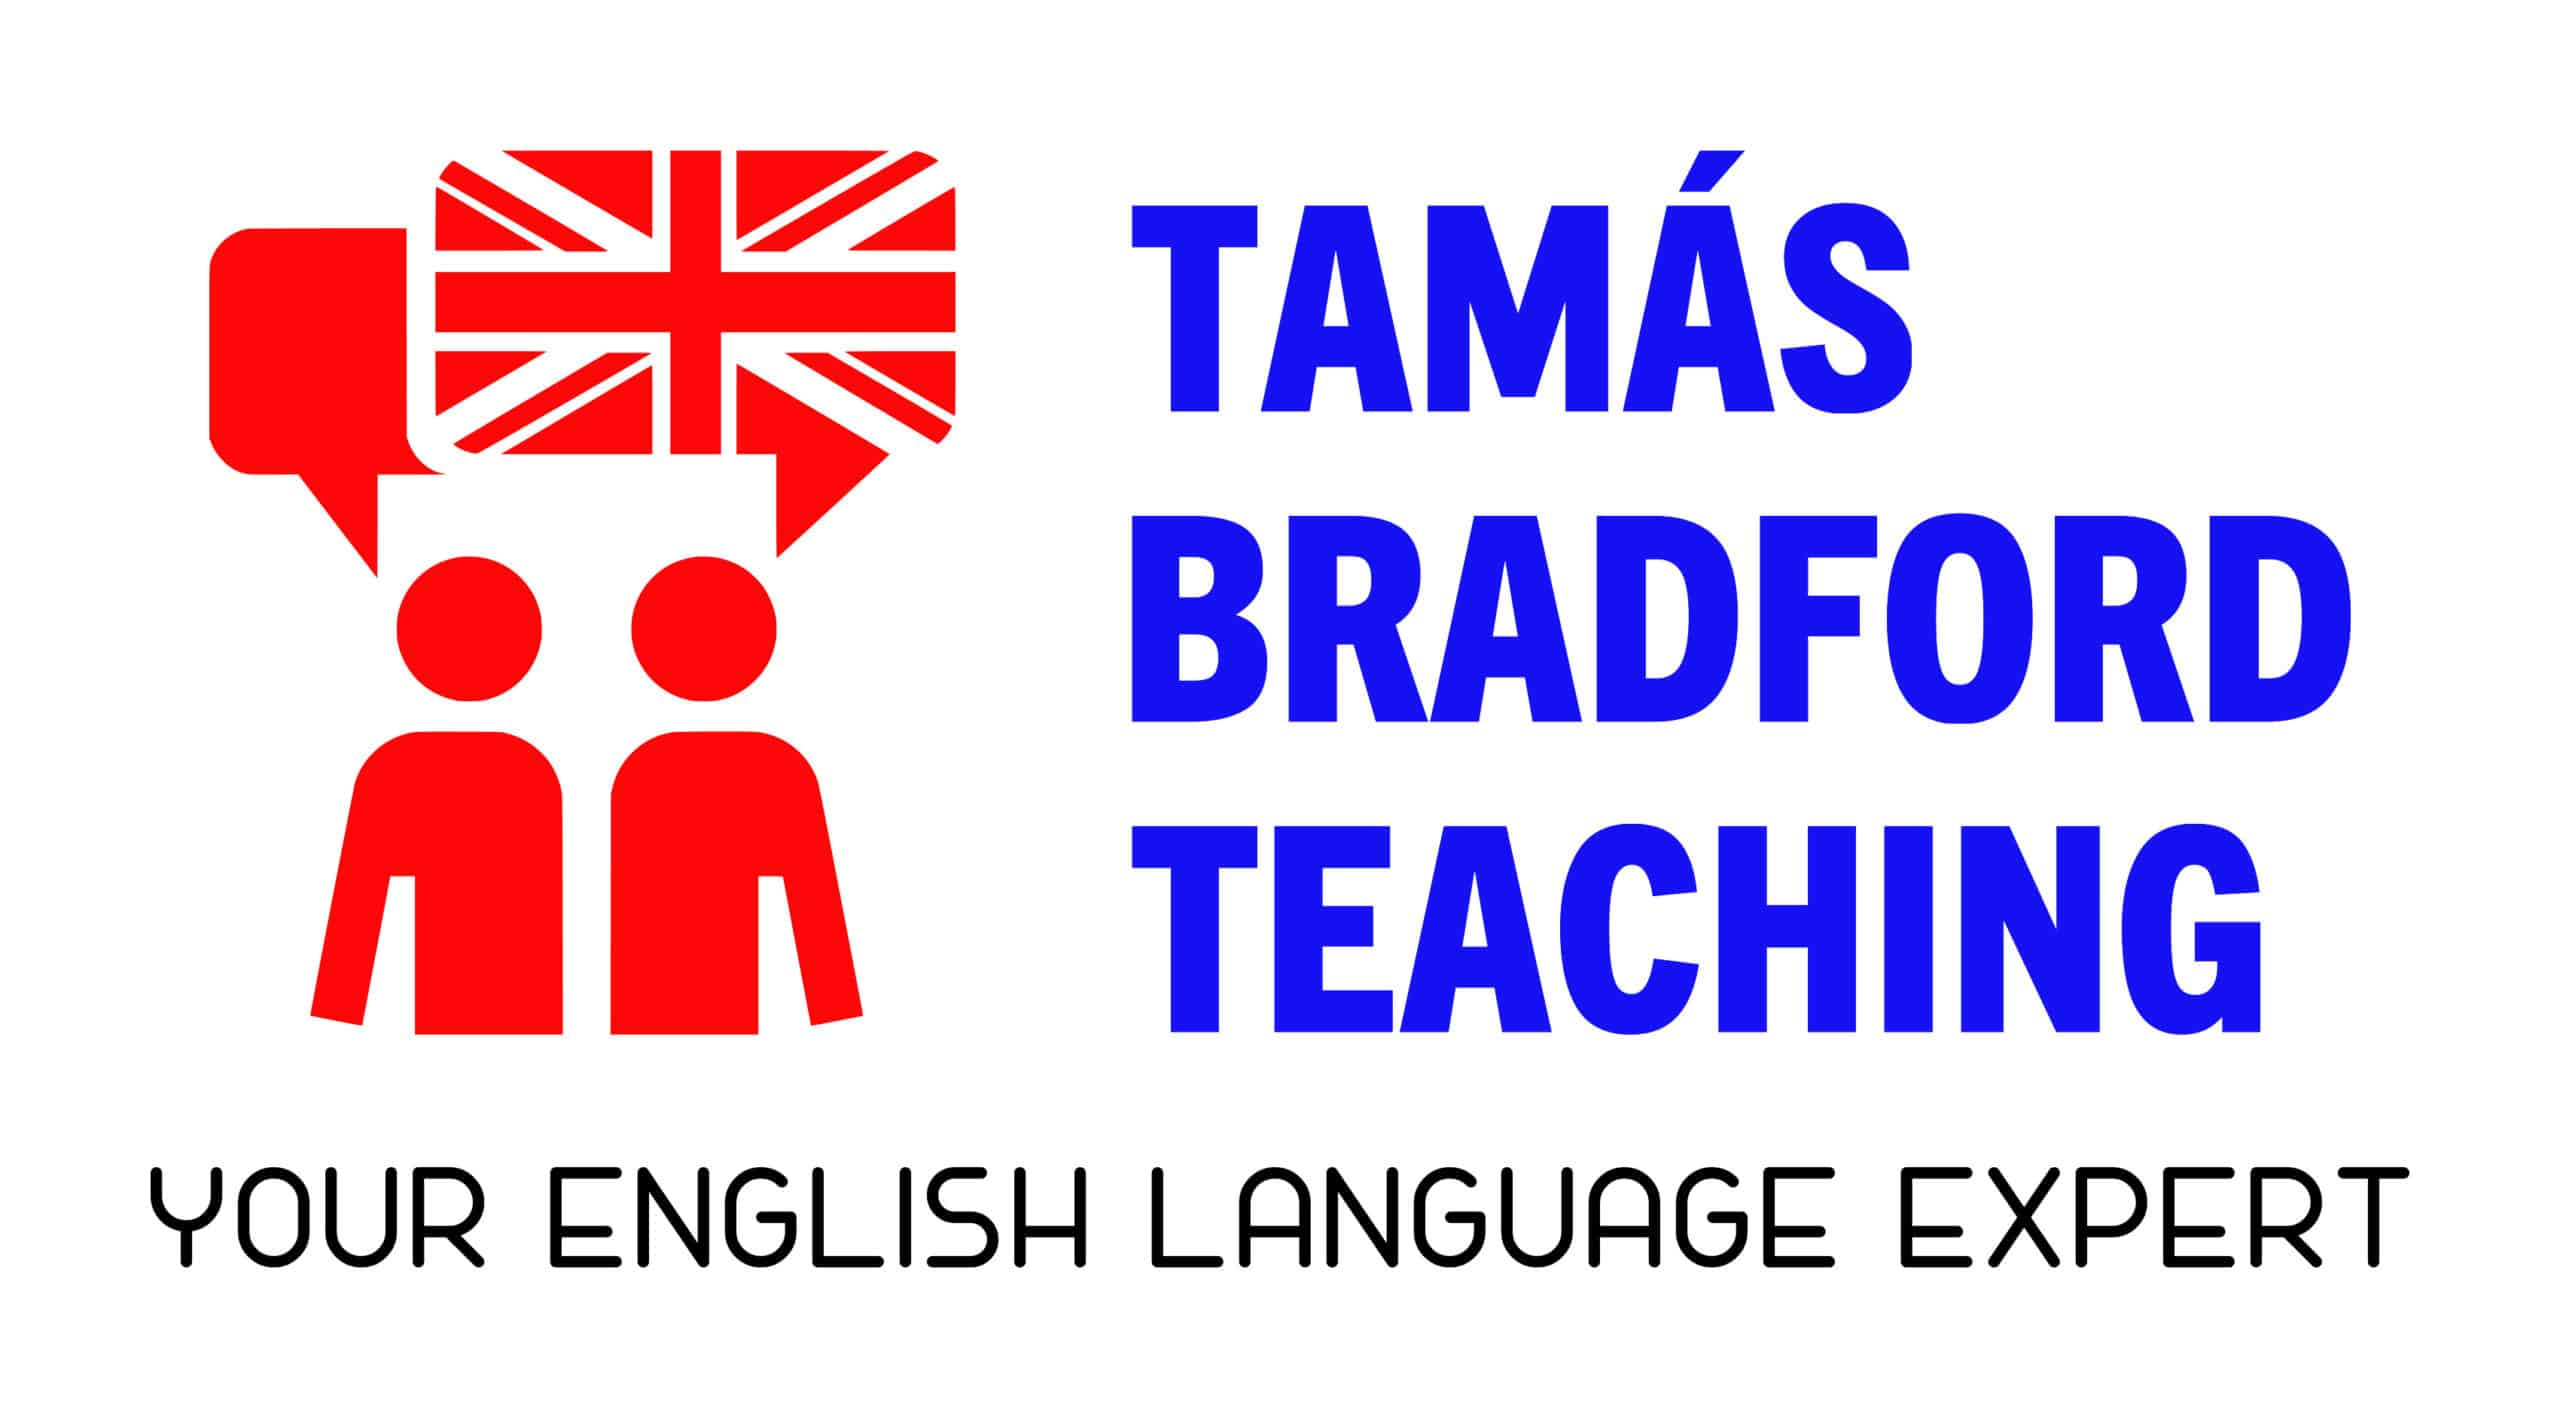 Logo - Tamas Bradford Teaching - your. English language expert